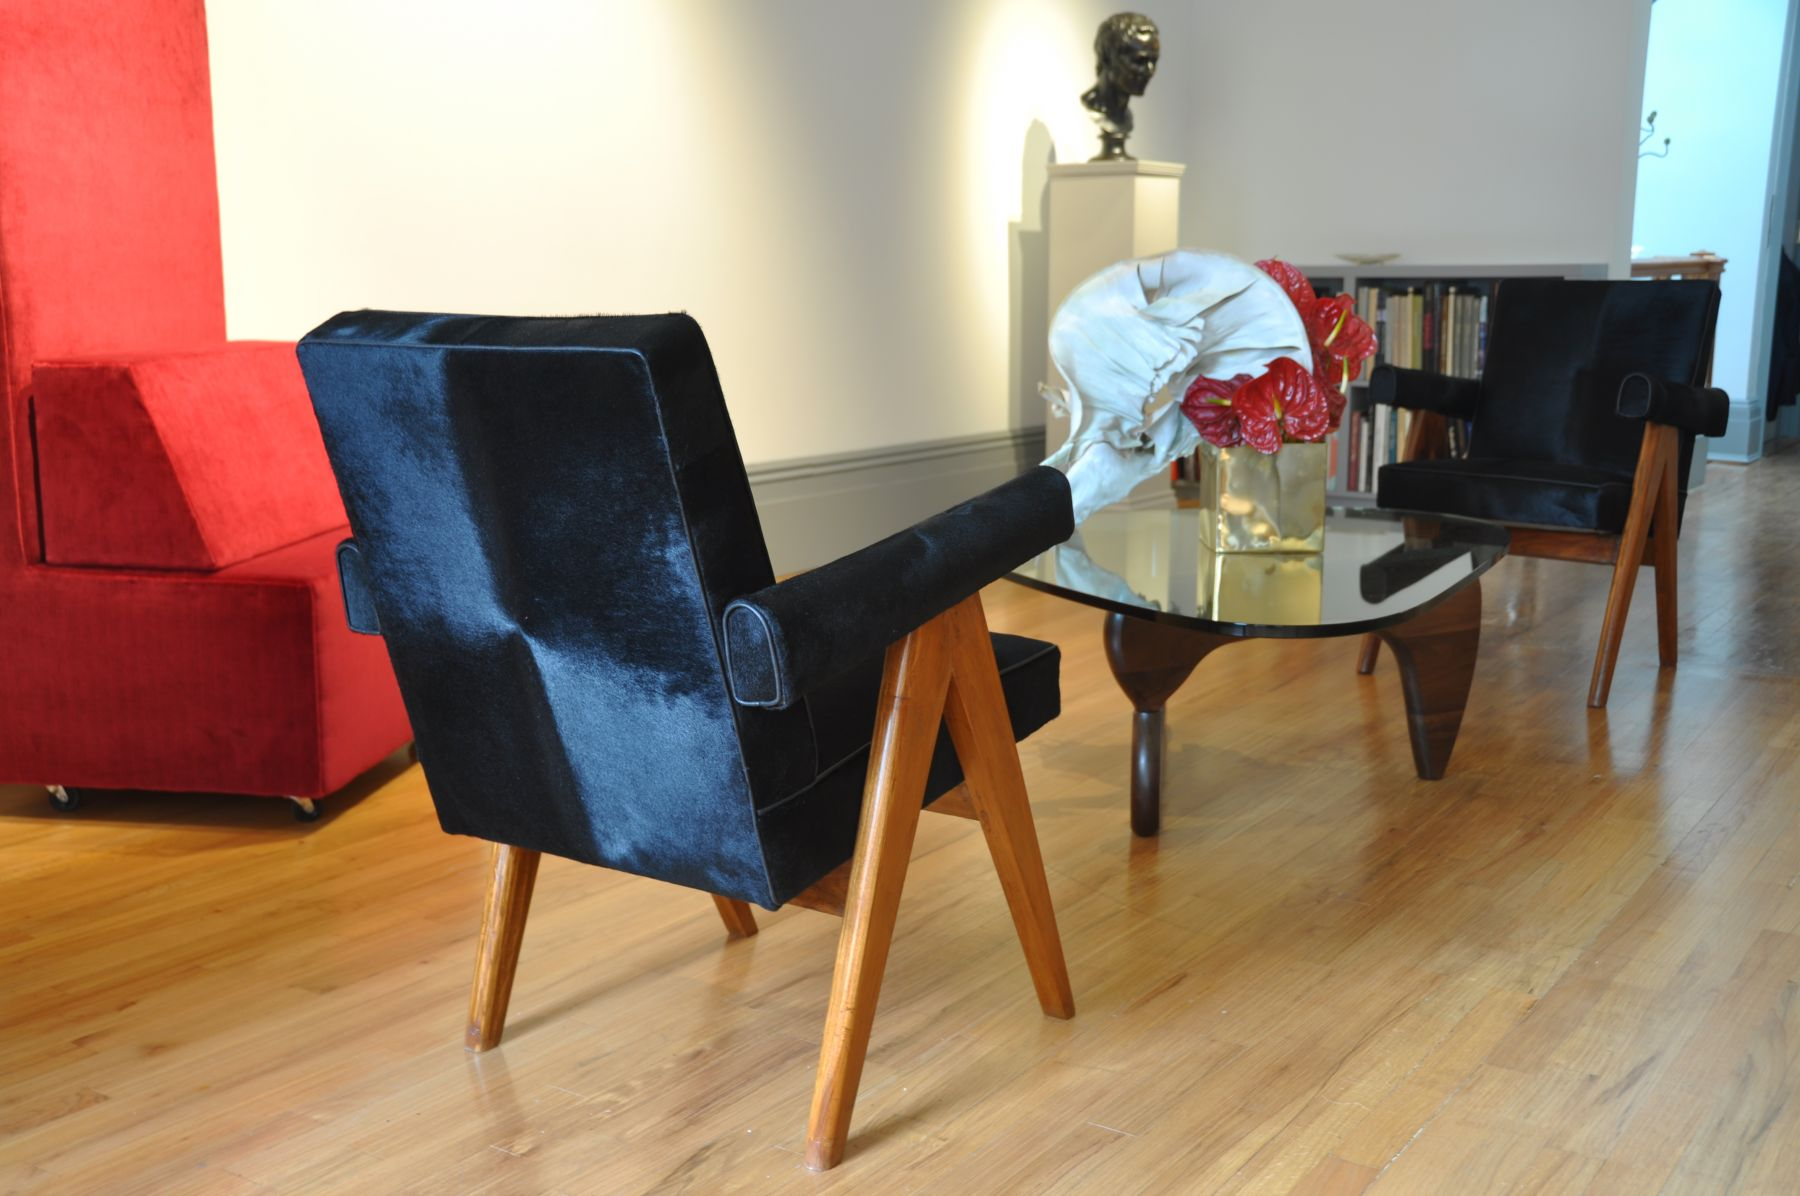 Nicholas Hall Art Gallery Old Masters Modern Furniture Francois Laffanour Installation Shot